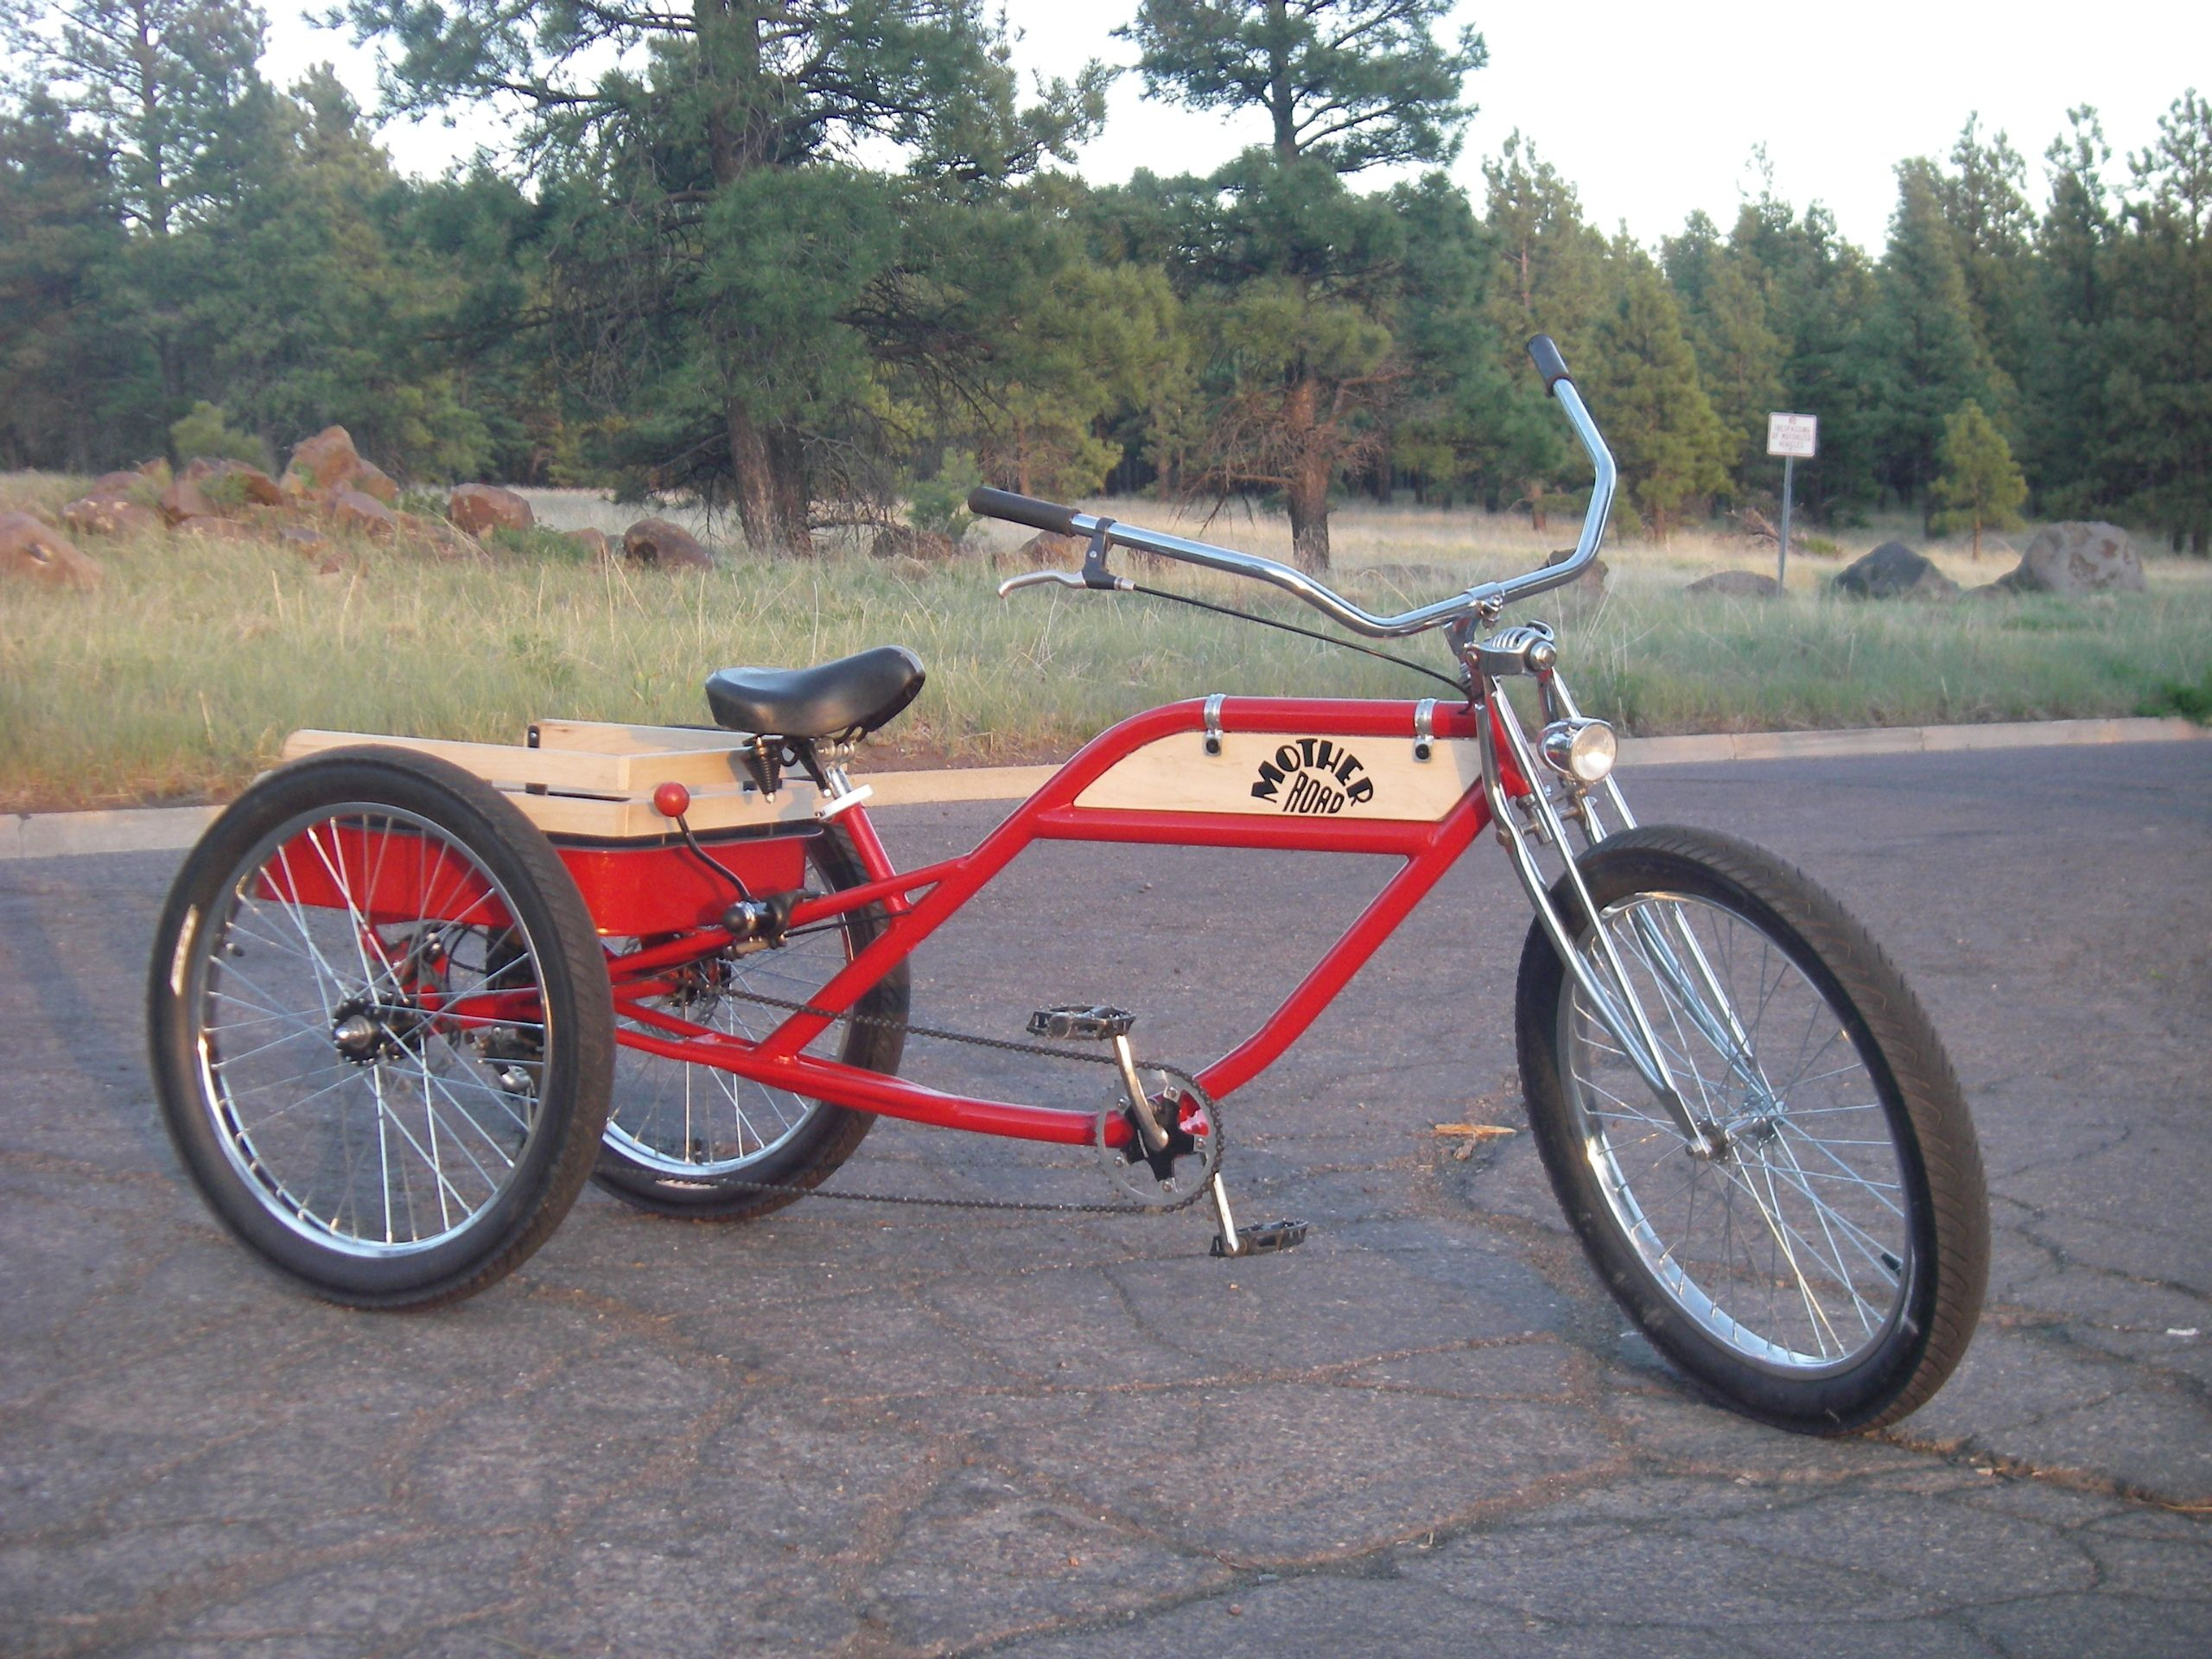 Little Red Express Trike by Wacko's Garage